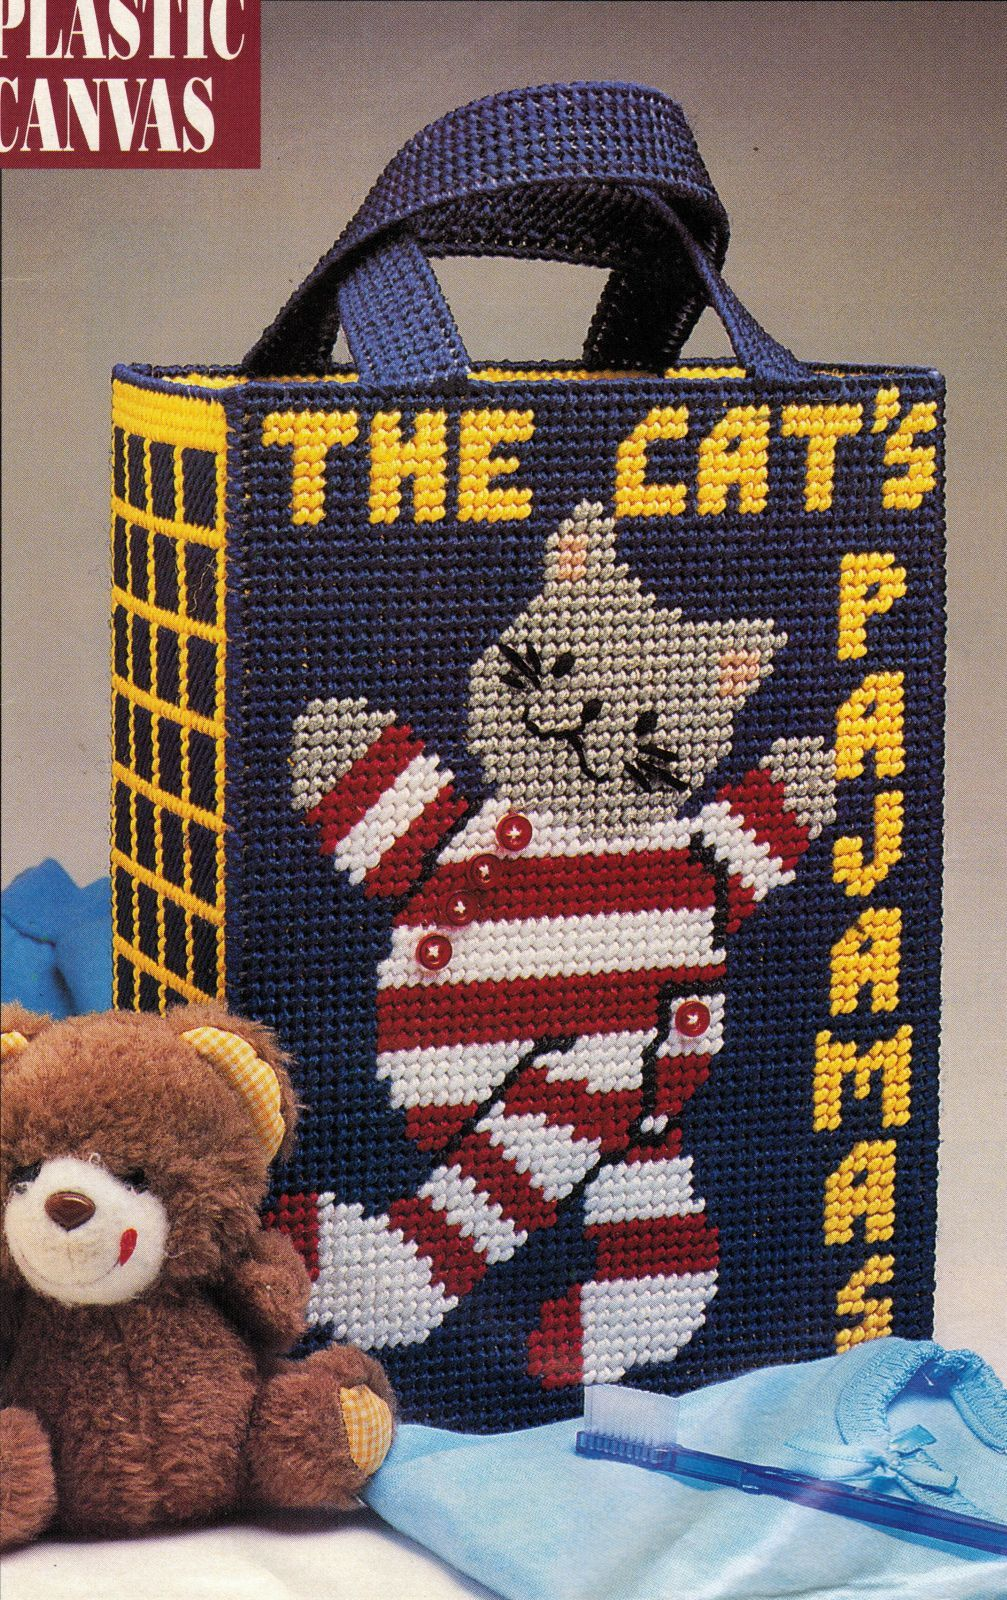 Primary image for Plastic Canvas Cats Window Pajama Bag Catchall Basket Letter Holder Pattern